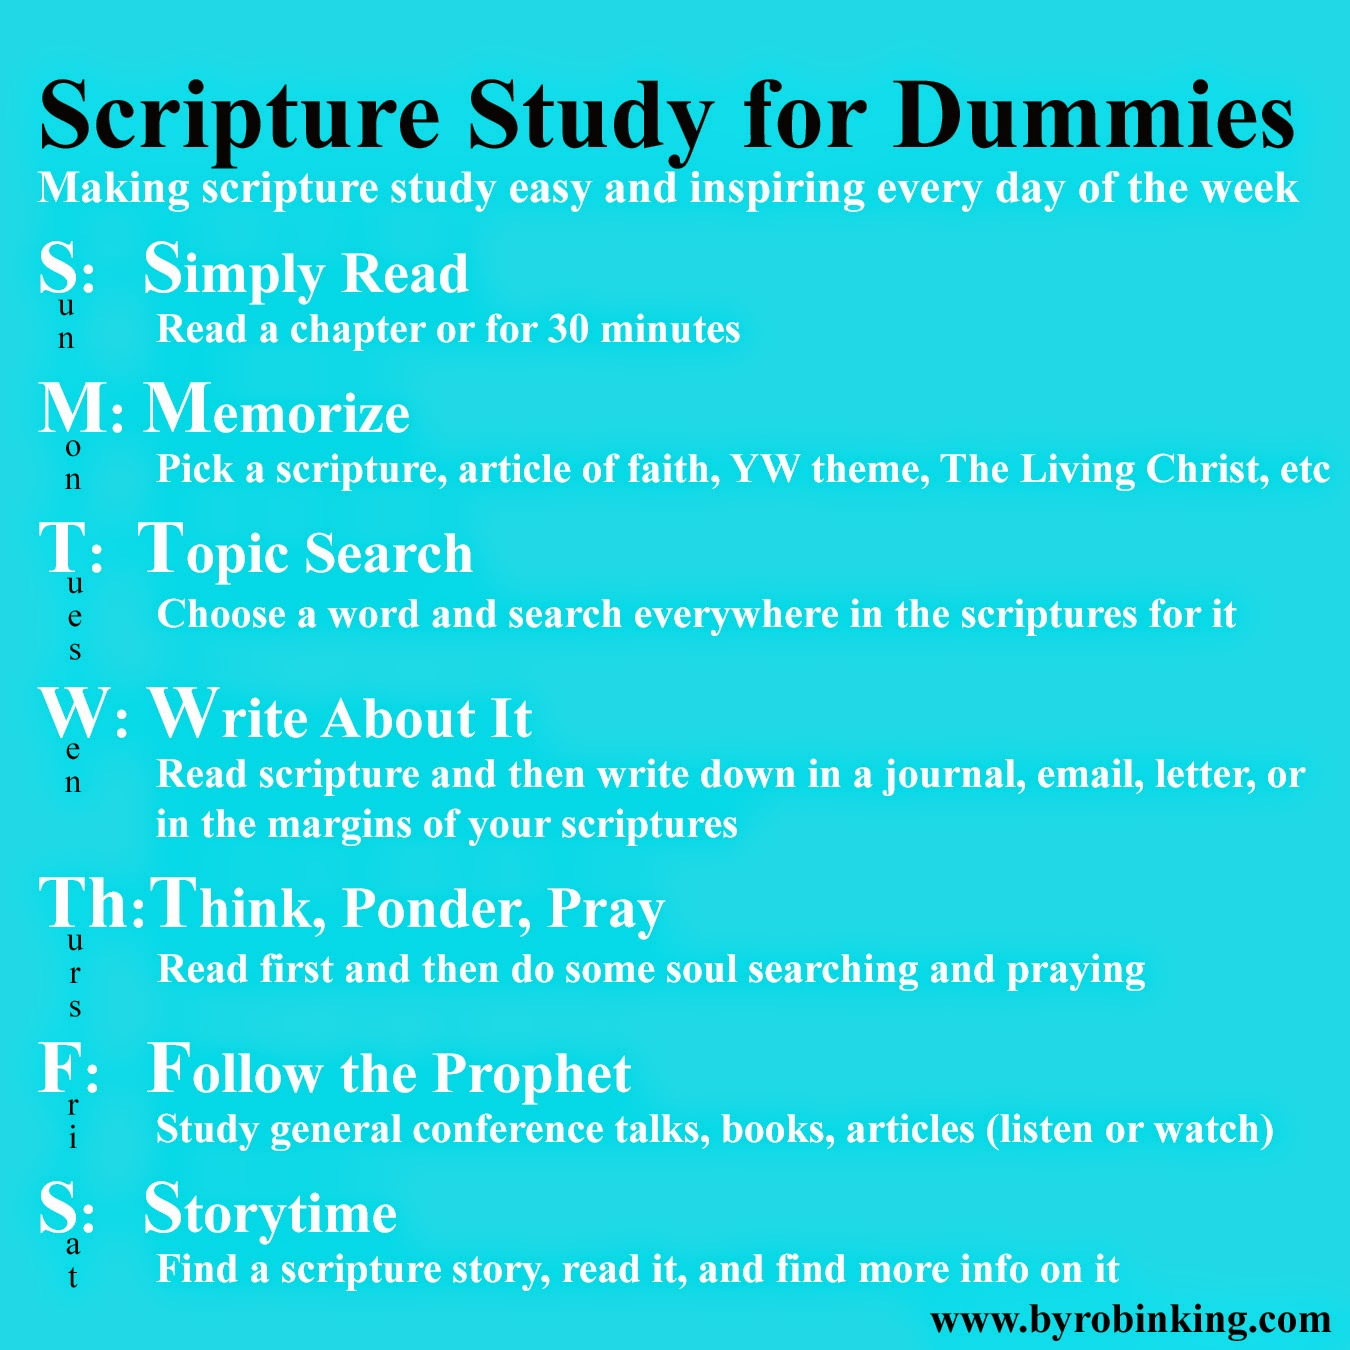 making scripture study easy and inspiring every day of the week